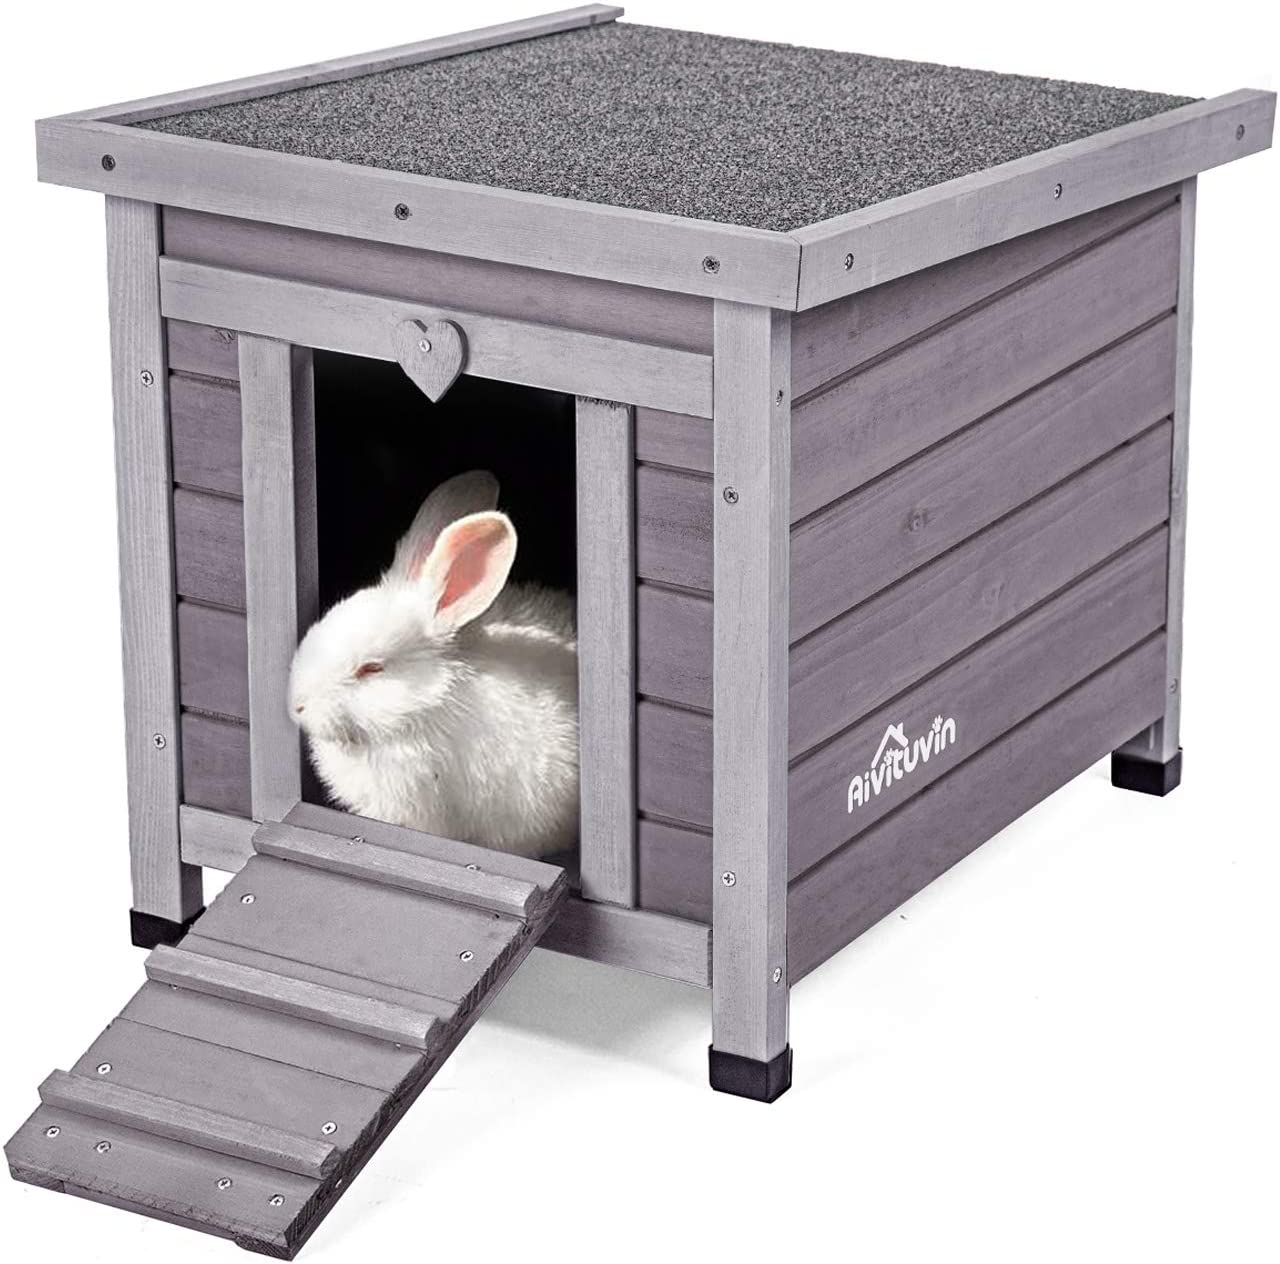 Aivituvin Wooden Dog Cat House Outdoor And Indoor Feral Pet Houses With Stairs For Dogs Insulated